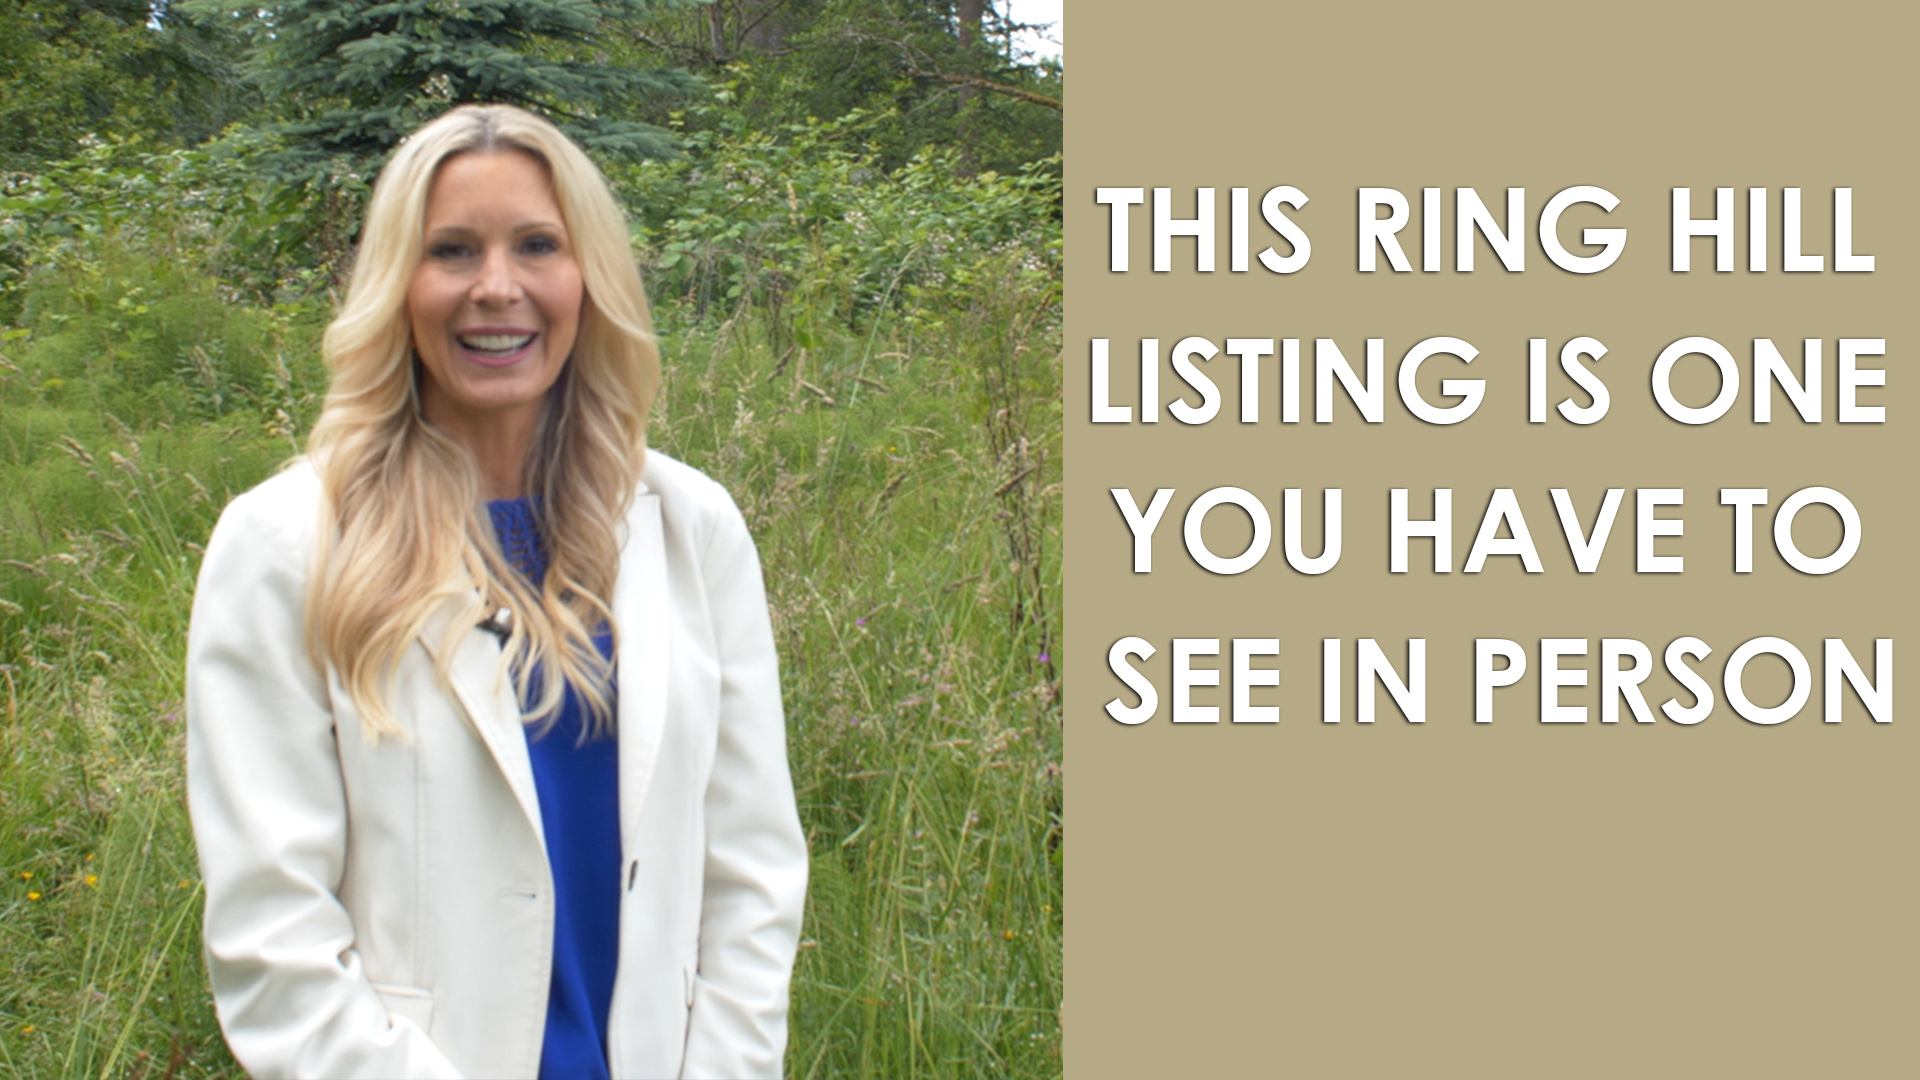 This Ring Hill Listing Is One You Have to See in Person